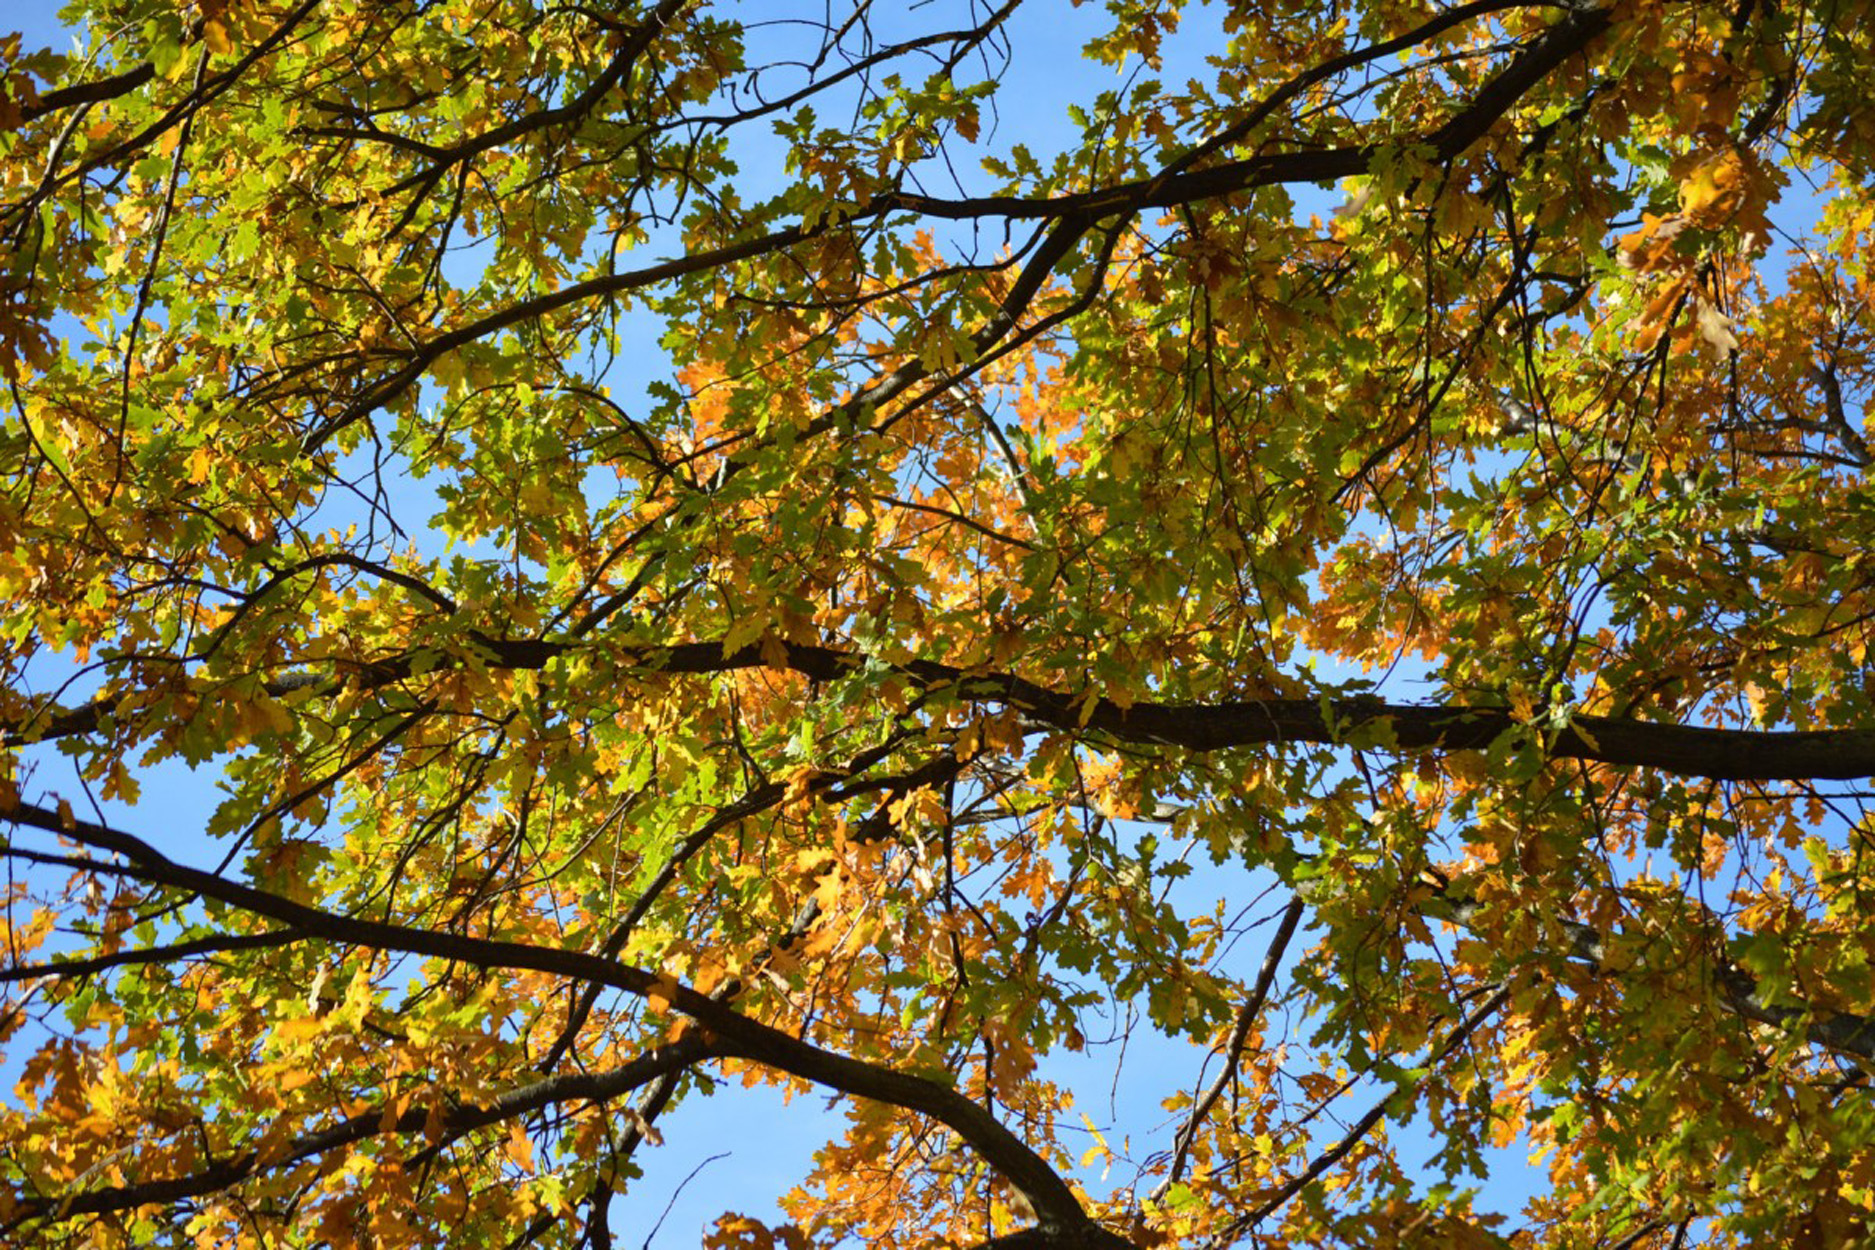 autumn_fall_branches_leaves_colorful_tree_orange_nature-1265694.jpg